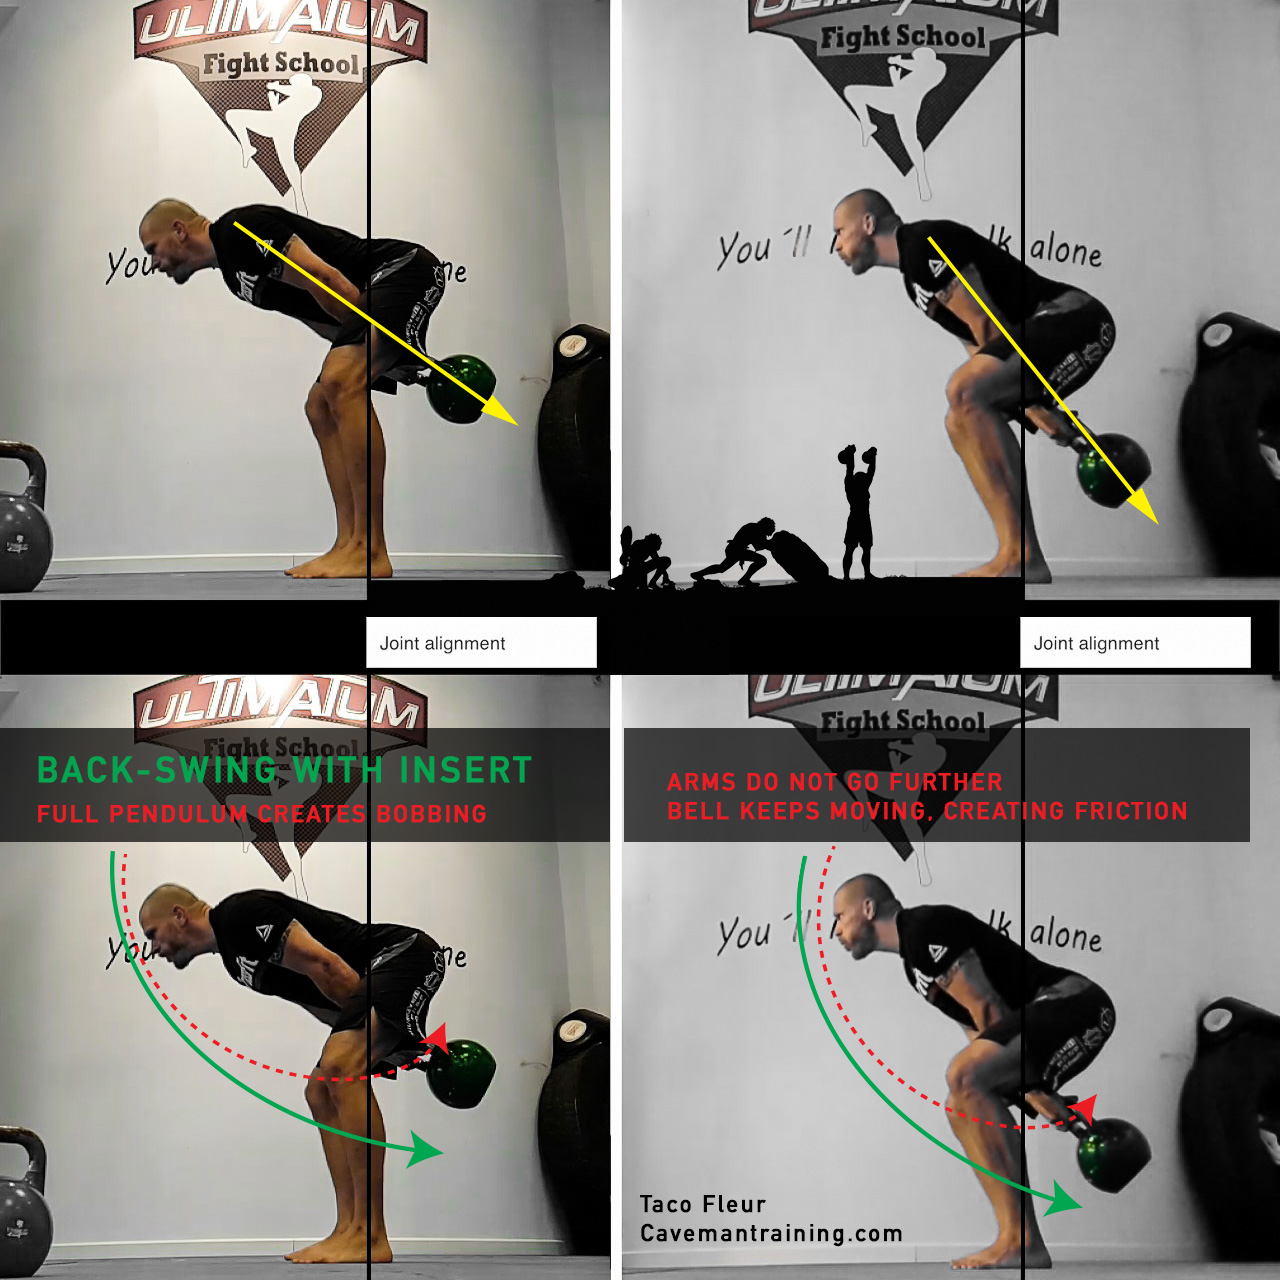 How to prevent kettlebell bobbing